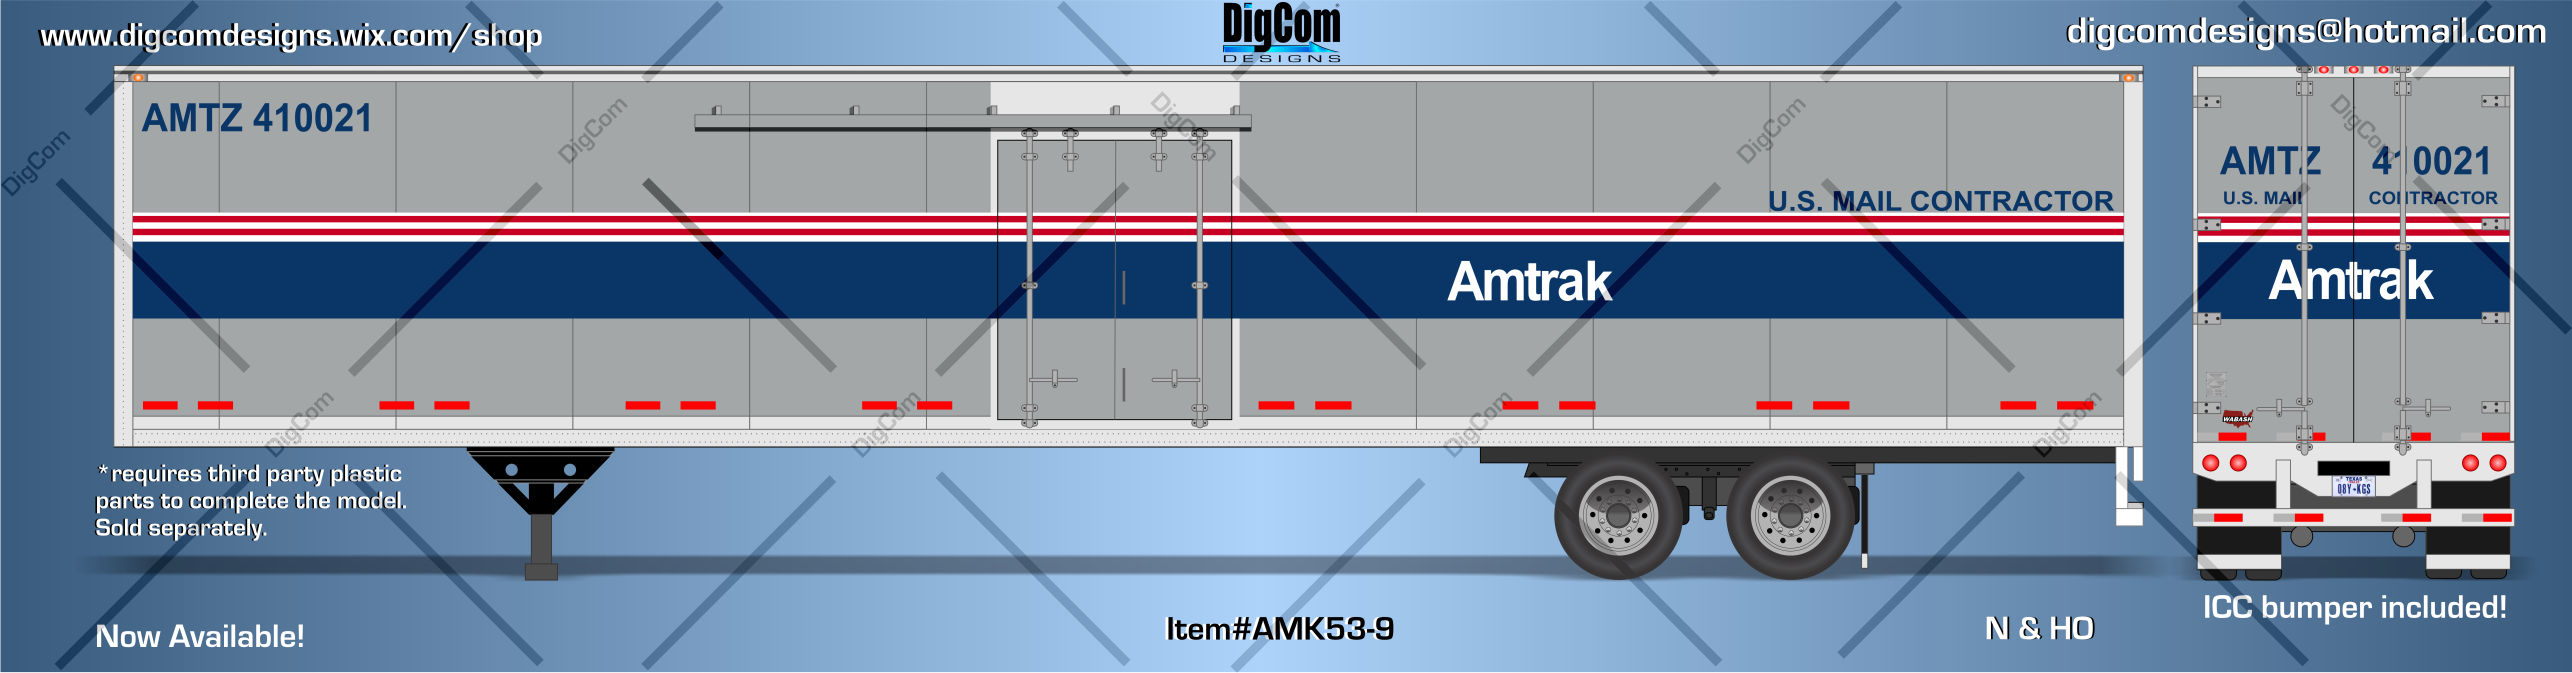 AMTRAK TRAILER DESIGN.jpg